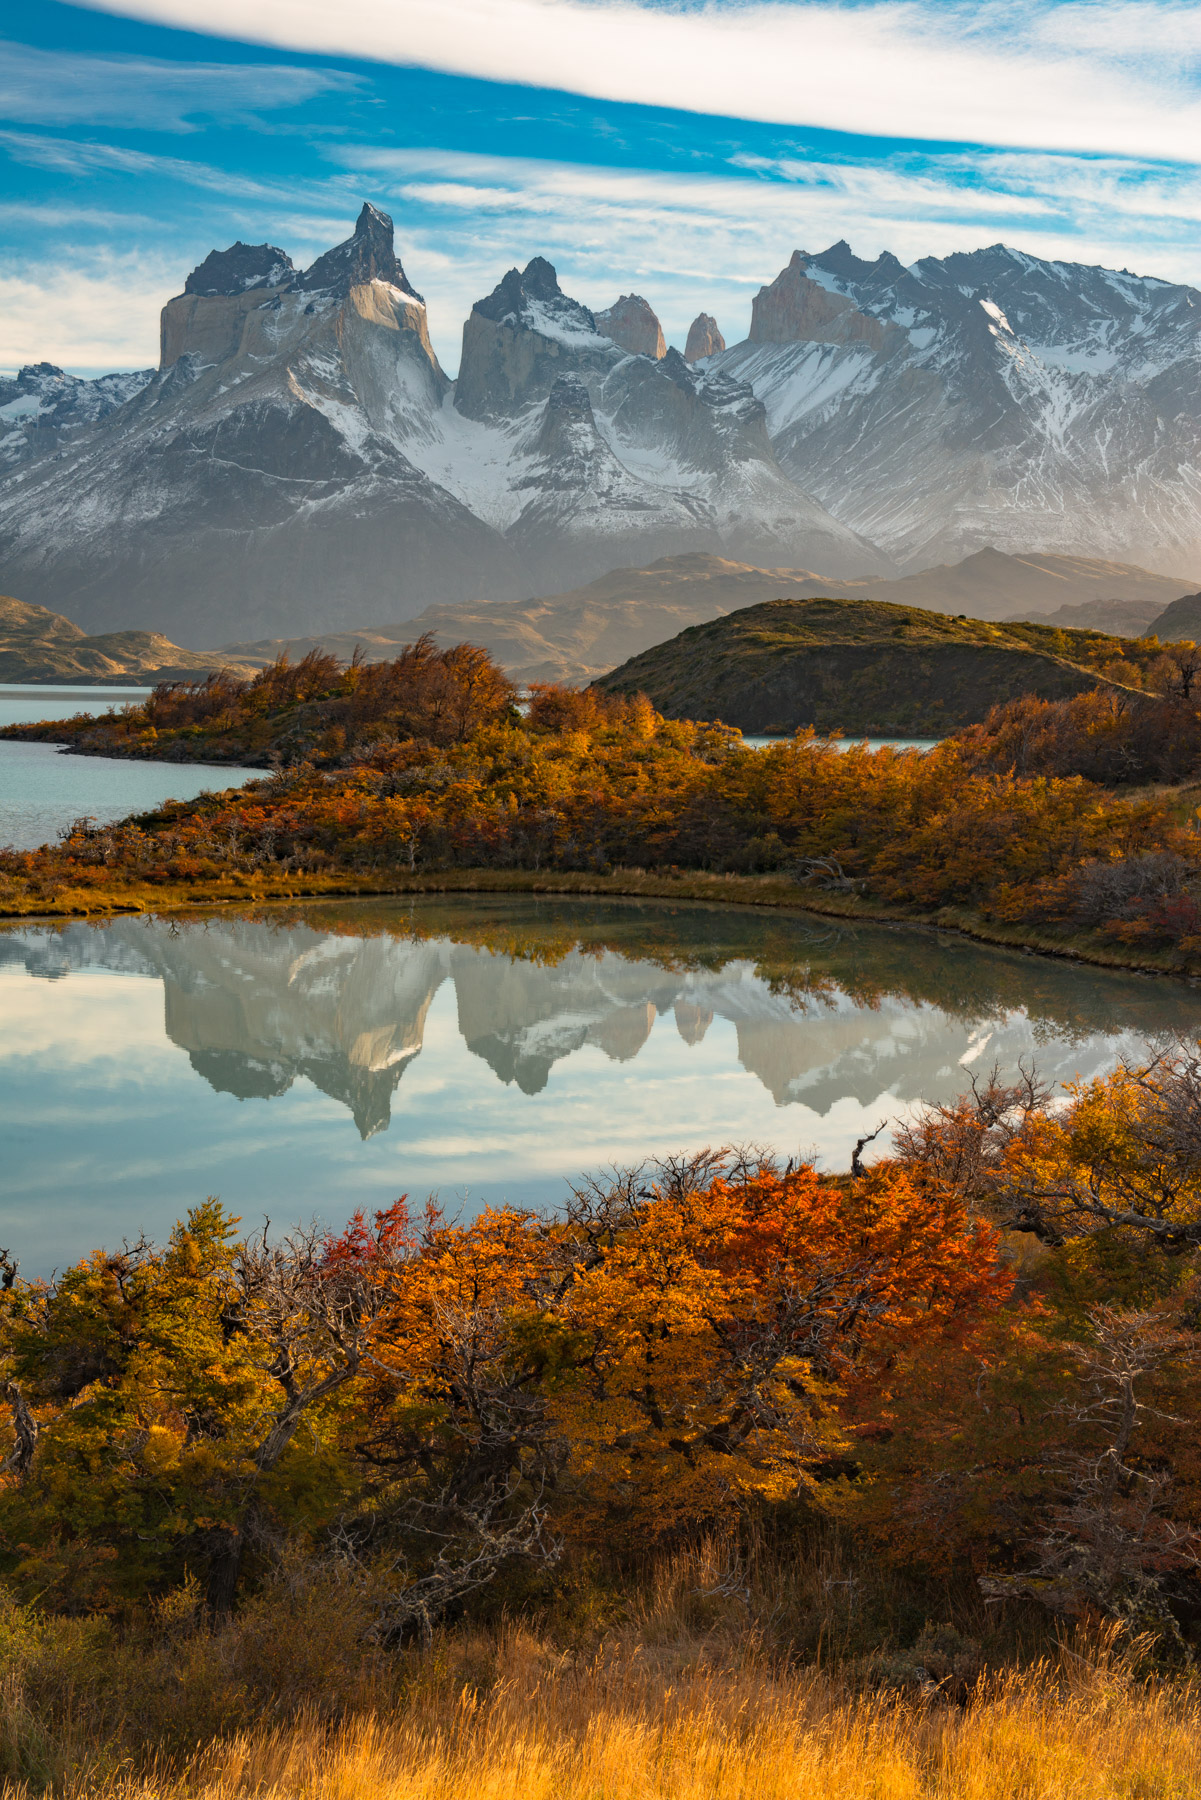 The peaks of Torre Del Paine reflected in the still waters of Lago Pehoe with stunning autumn colors. Available Print Sizes:...